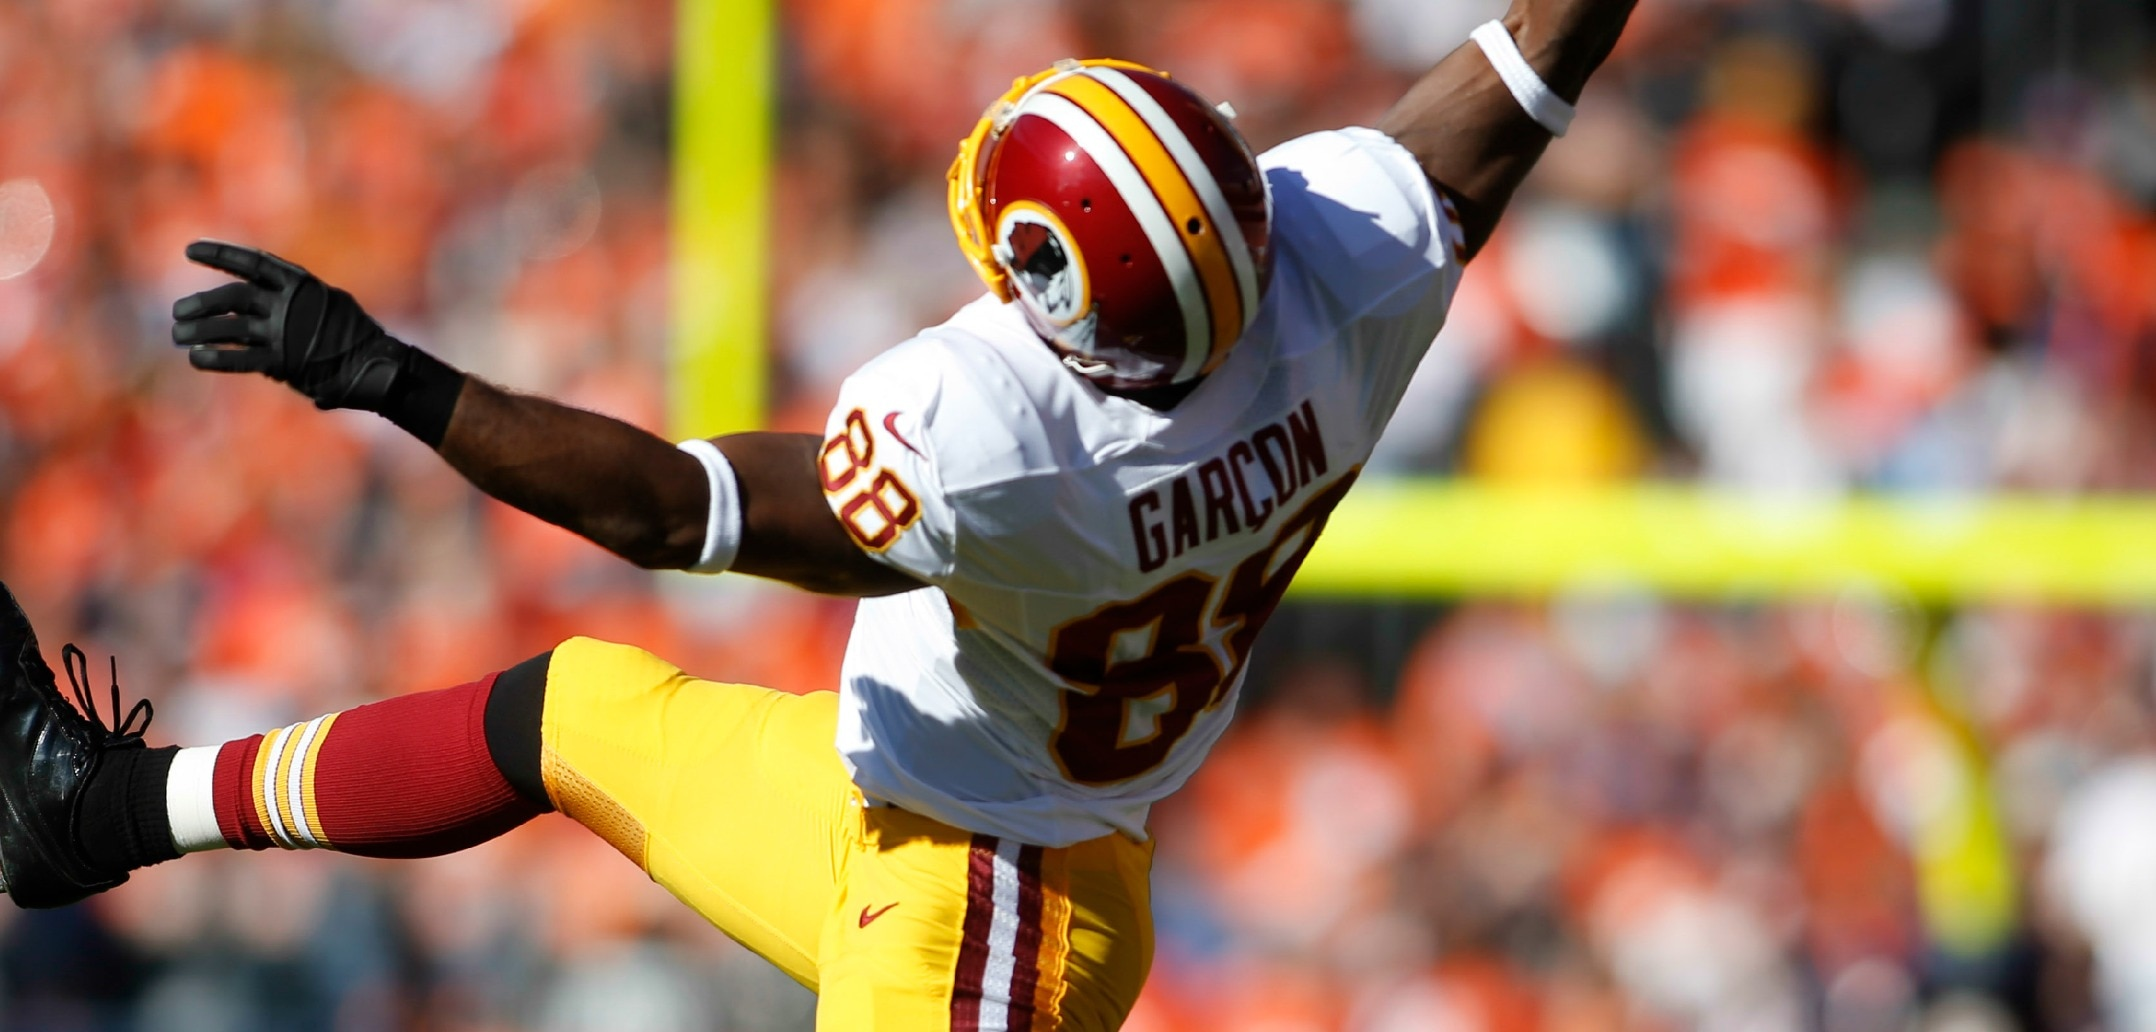 Pierre A Pizza Pierre Garcon Says Legal Marijuana Could Help His Pizza Business